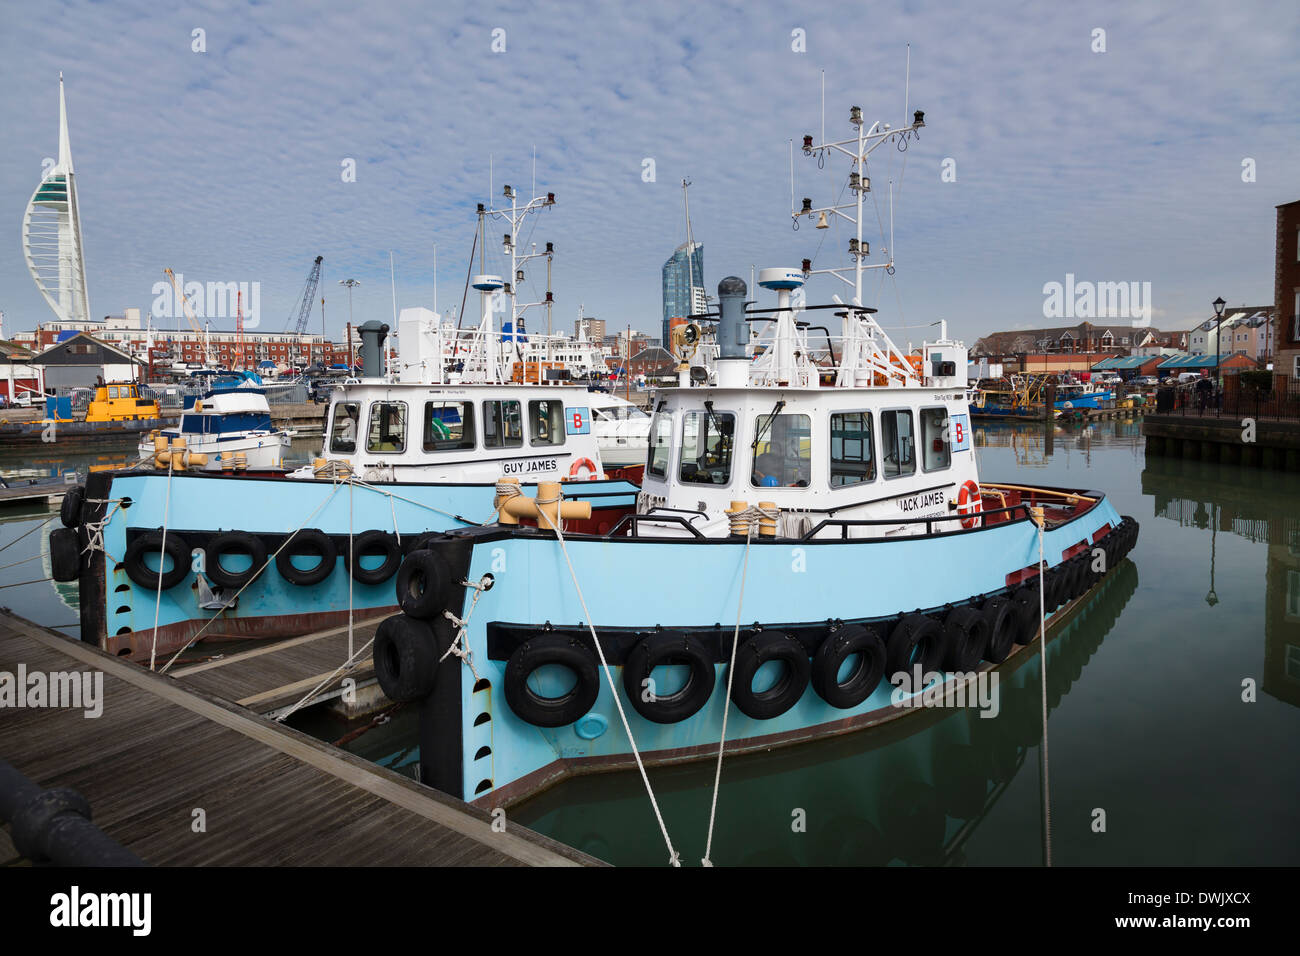 Two Portsmouth tug boats moored in Portsmouth Harbour. - Stock Image